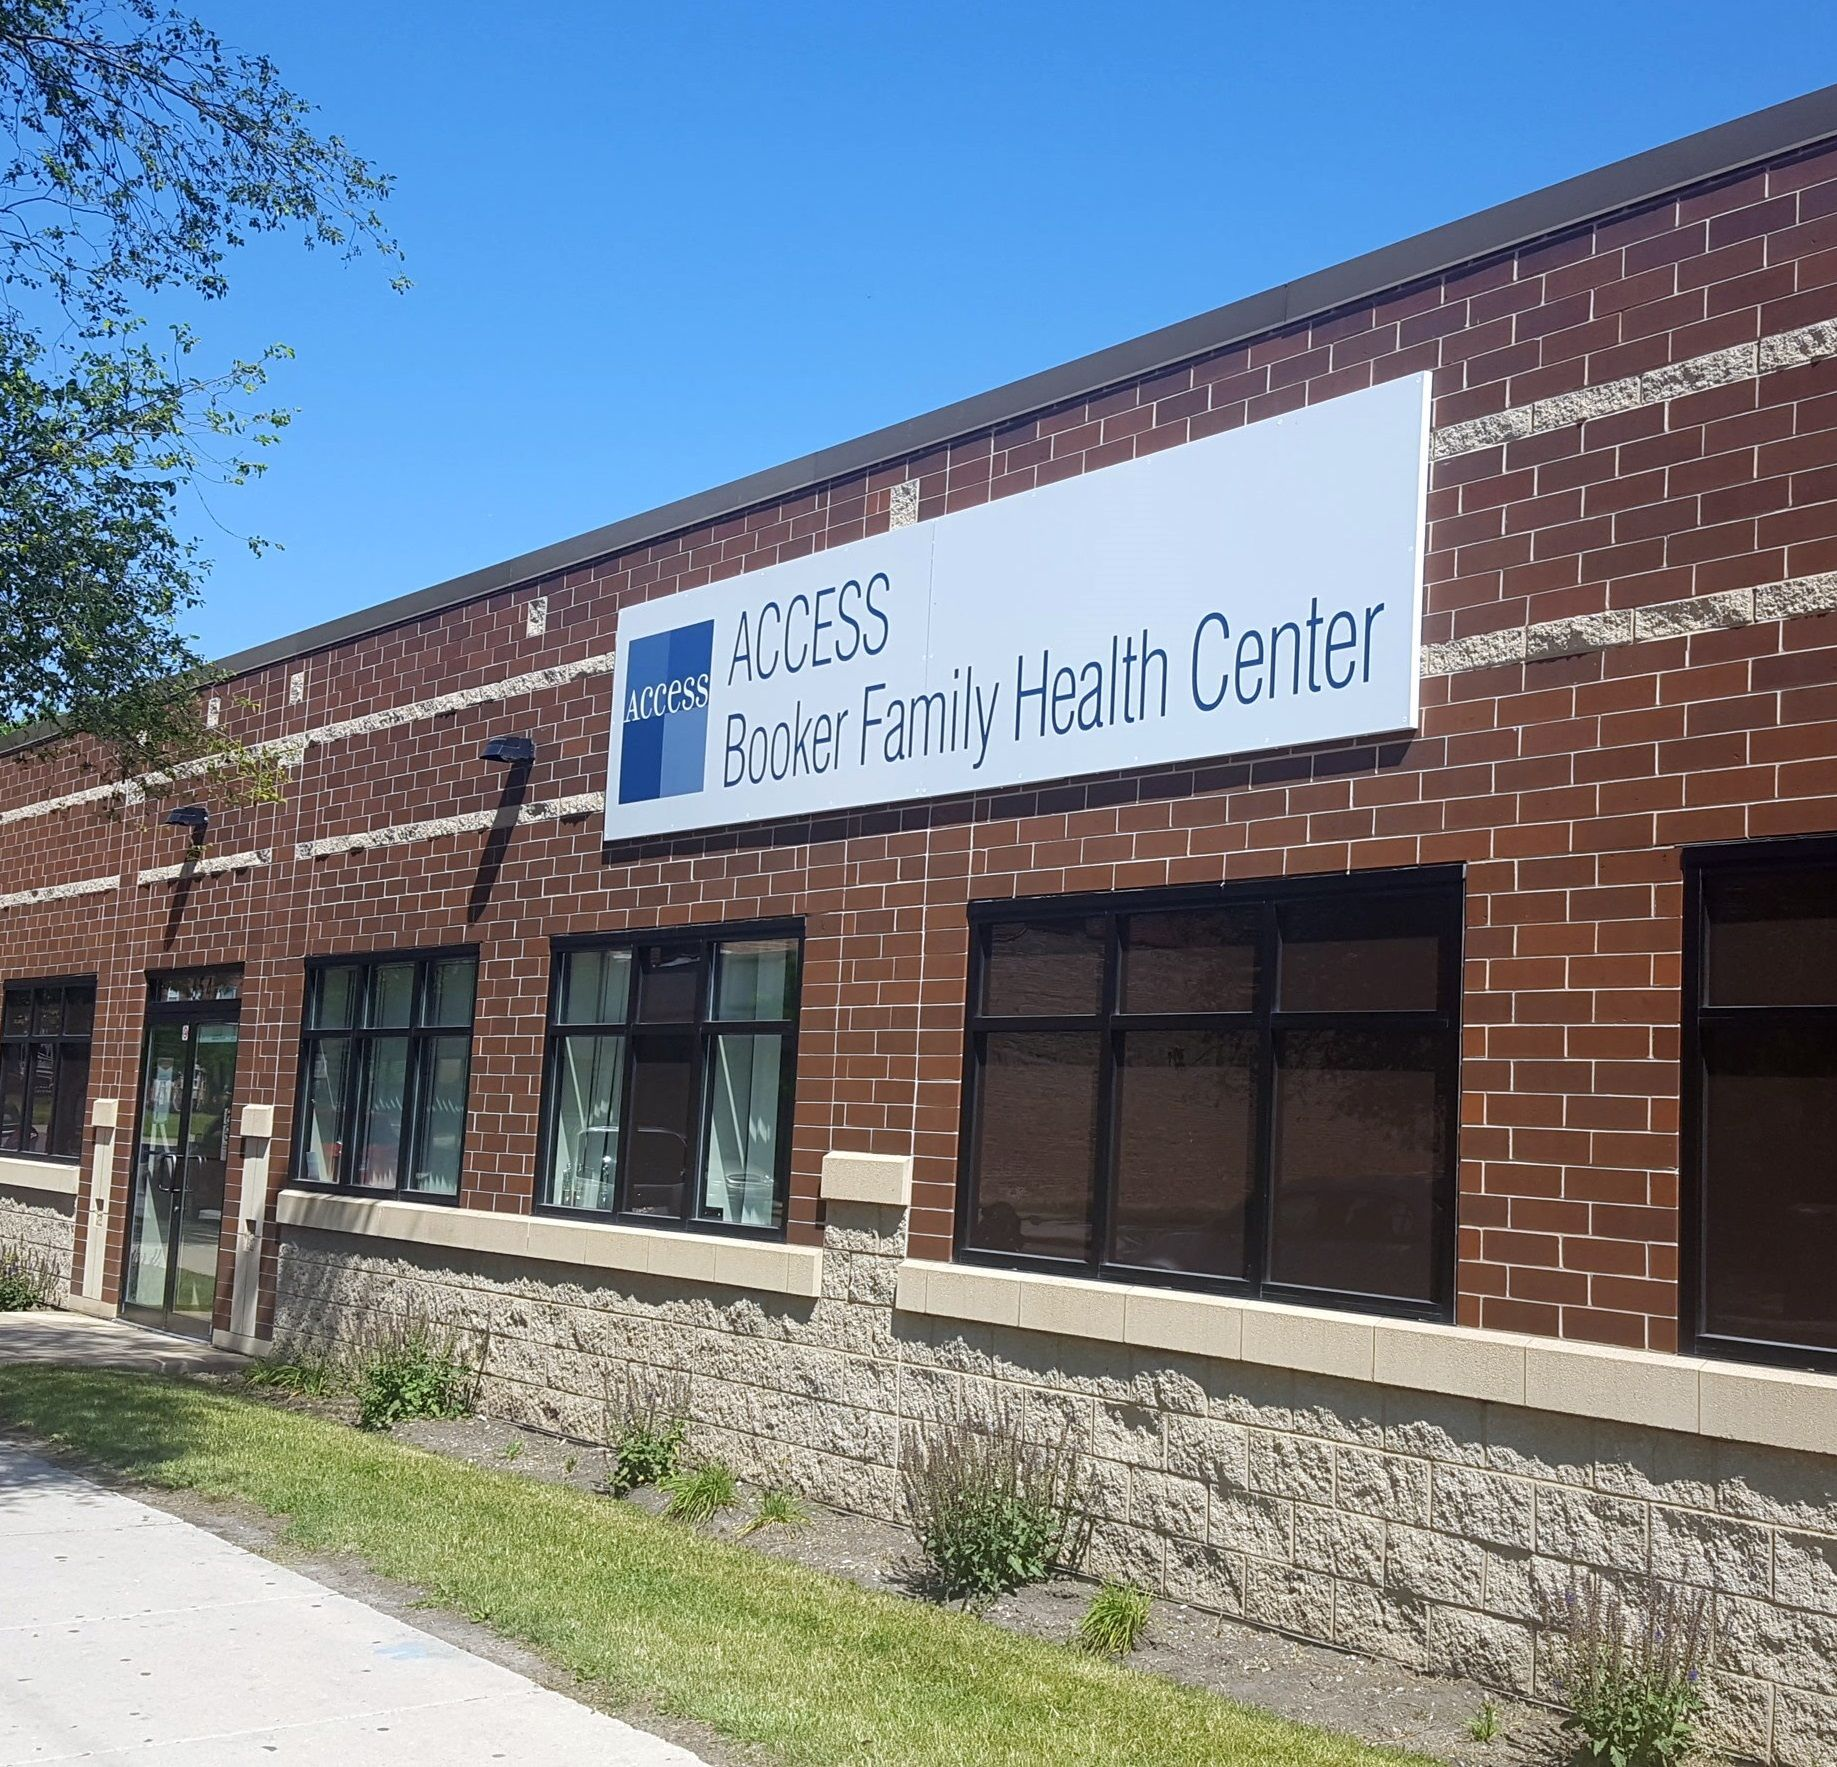 Access Booker Family Health Center